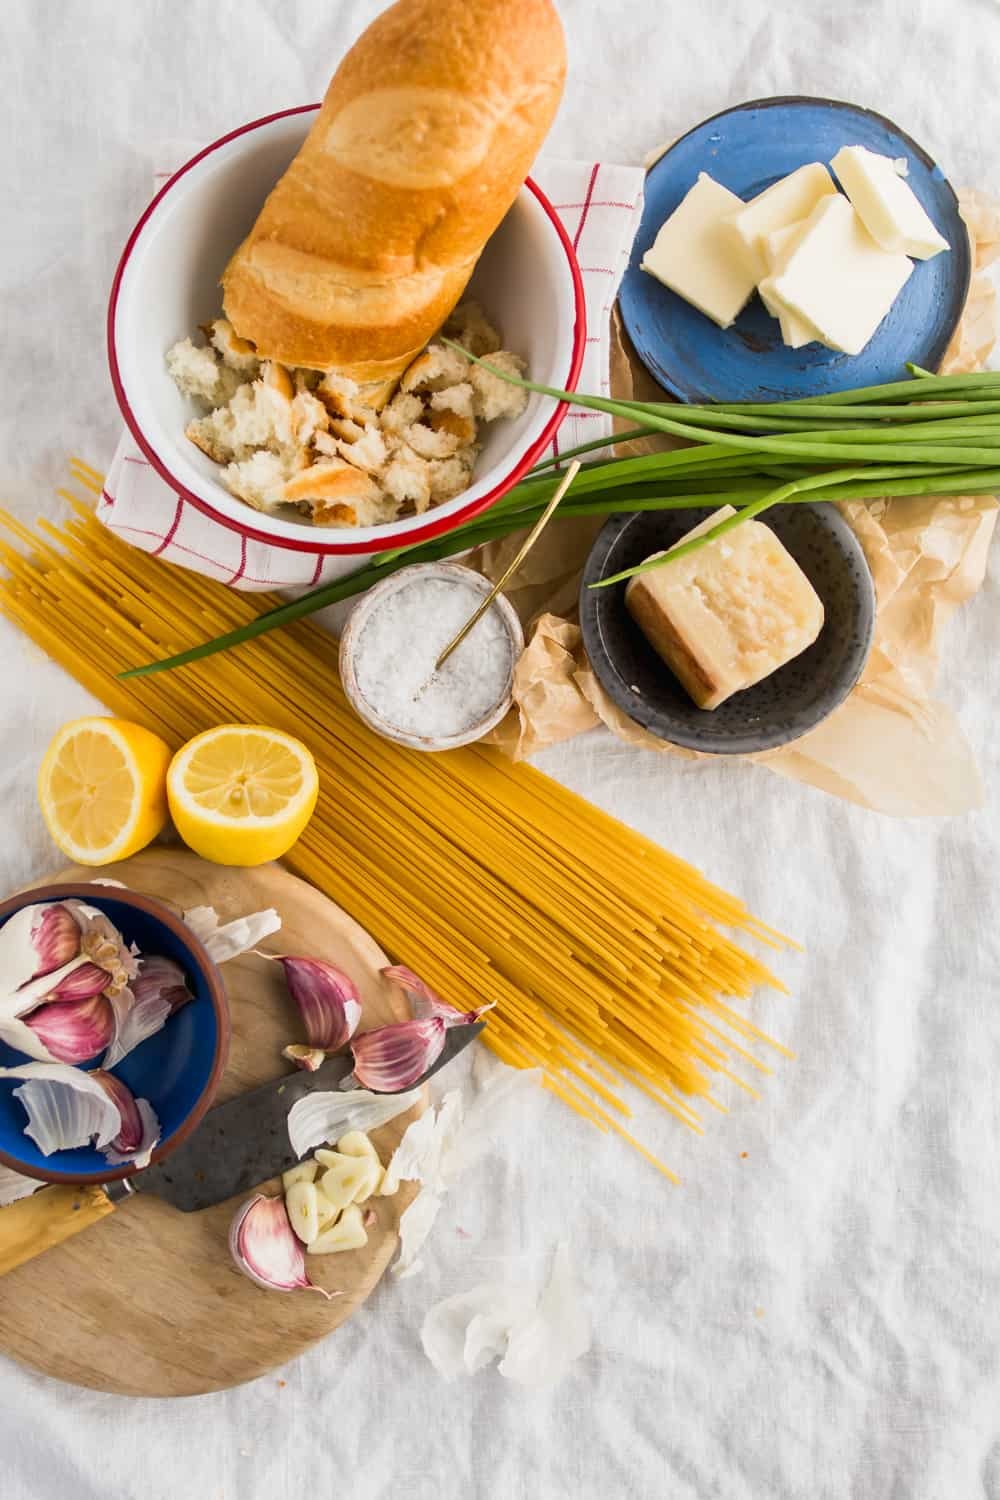 Ingredients for the spaghetti with garlic herb breadcrumbs. Fresh bread in a white bowl, butter, fresh parmesan, sea salt, spaghetti, lemon, garlic, and fresh chives.